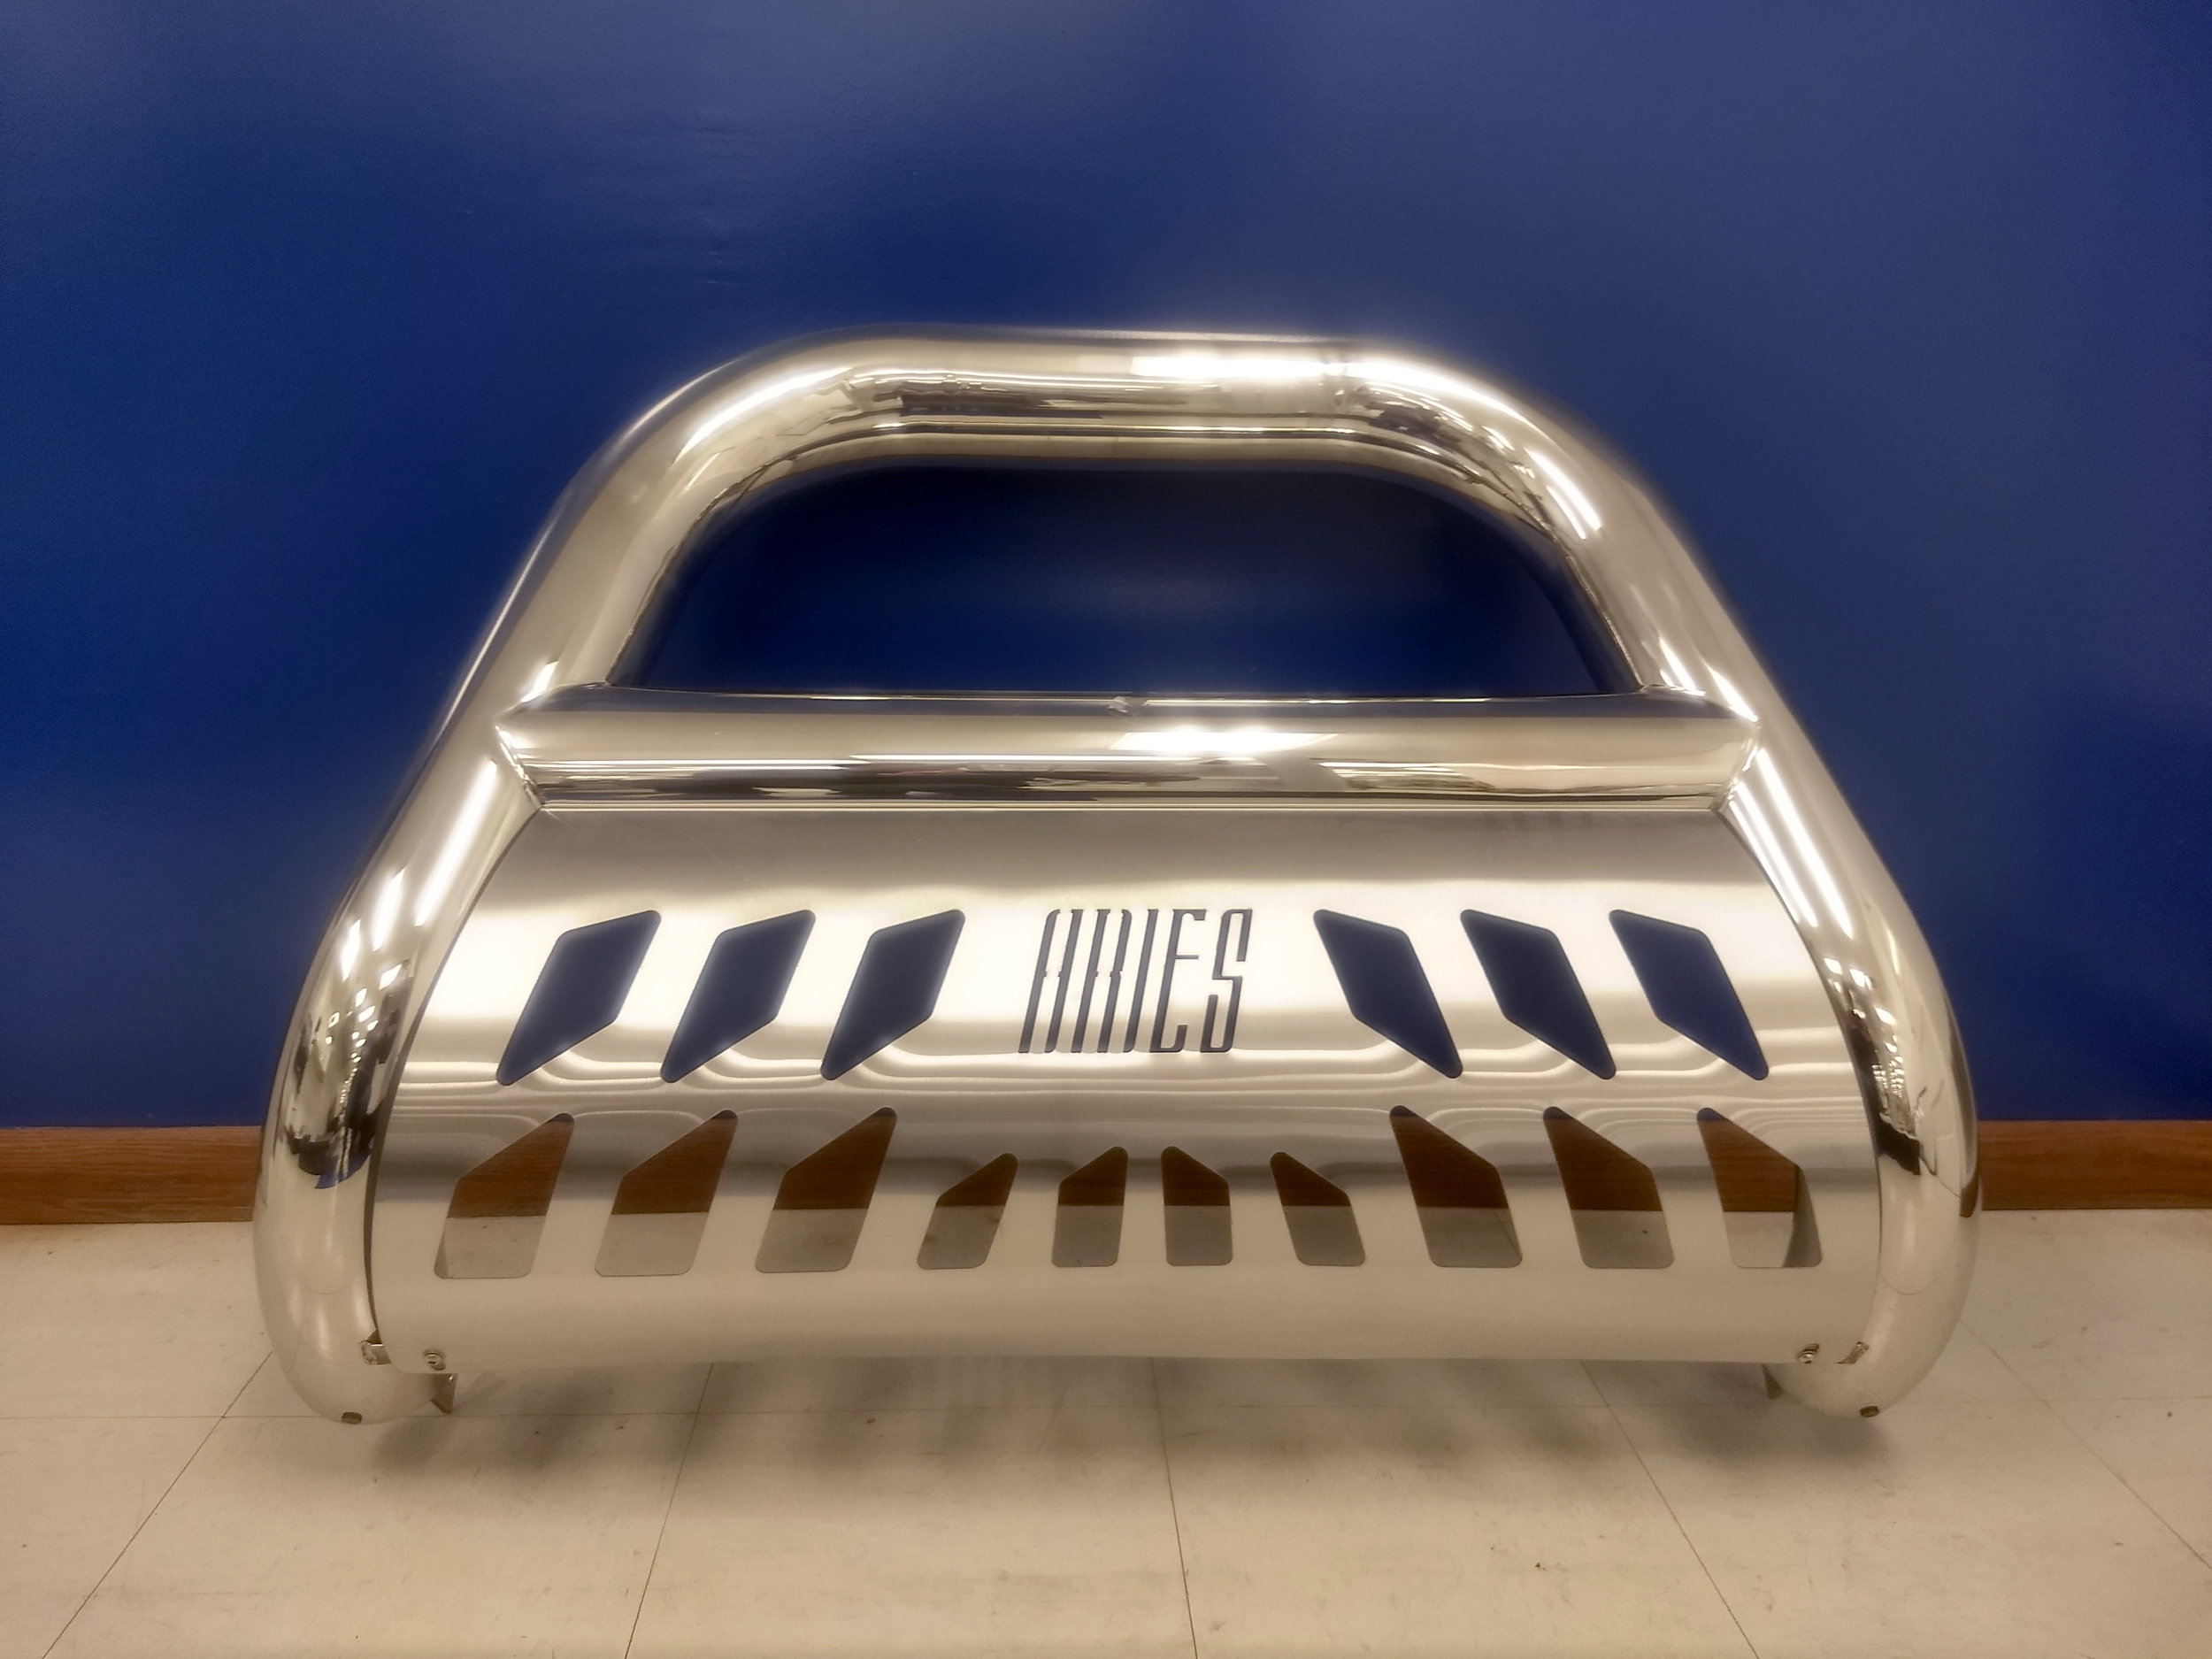 45-3007 - Aries grill guard for a 2004-2017 F150. Stainless steel with skid plate, showroom price $599.99.